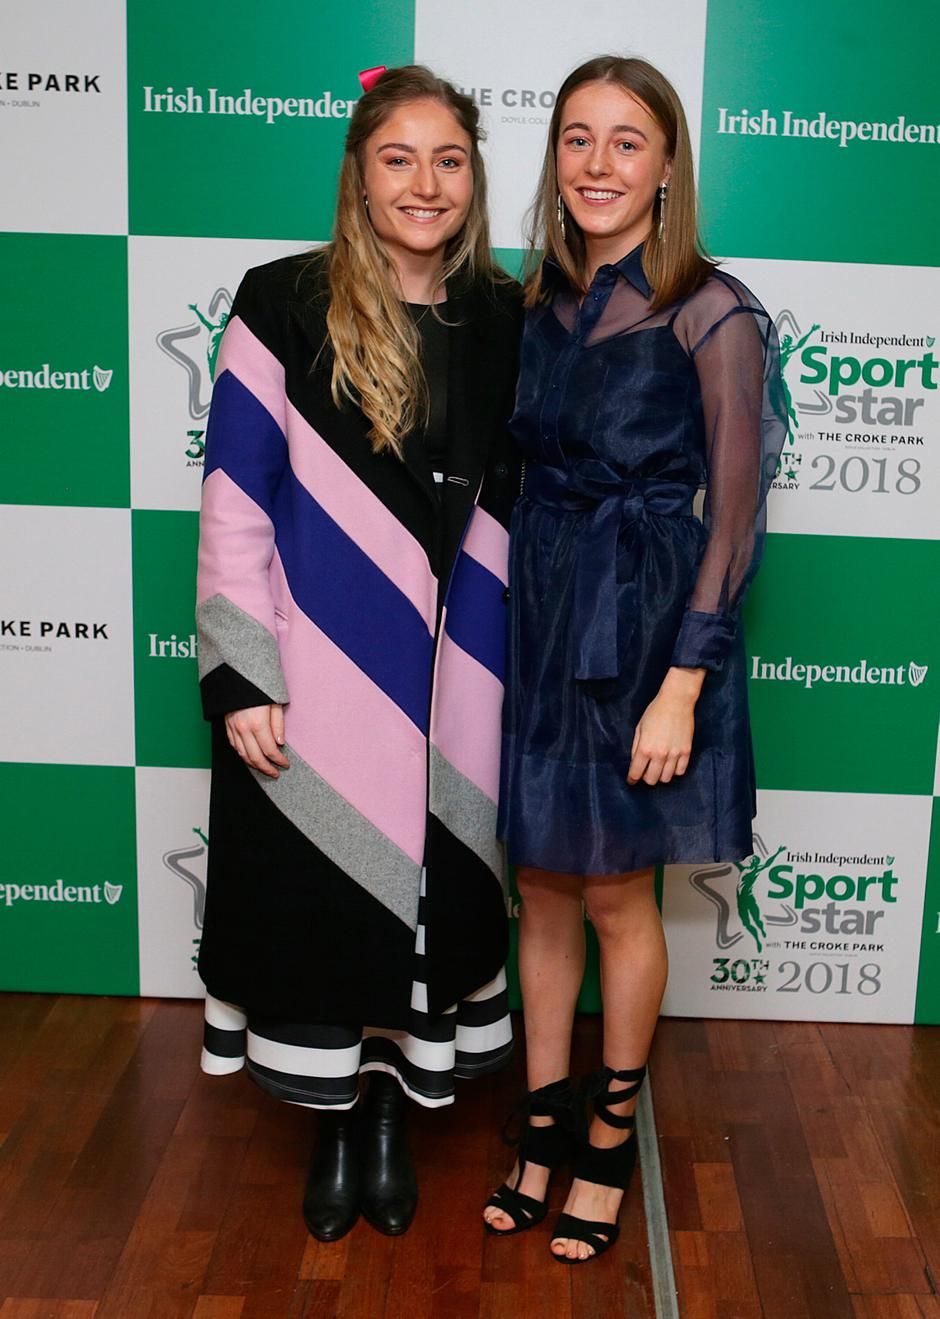 20/12/2018, Sarah Healy (right) with her sister Julia. Sarah won the young sportsstar of the year award at the Irish Independent Sportstar of the Year Awards at Croke Park. Picture credit; Damien Eagers / INM